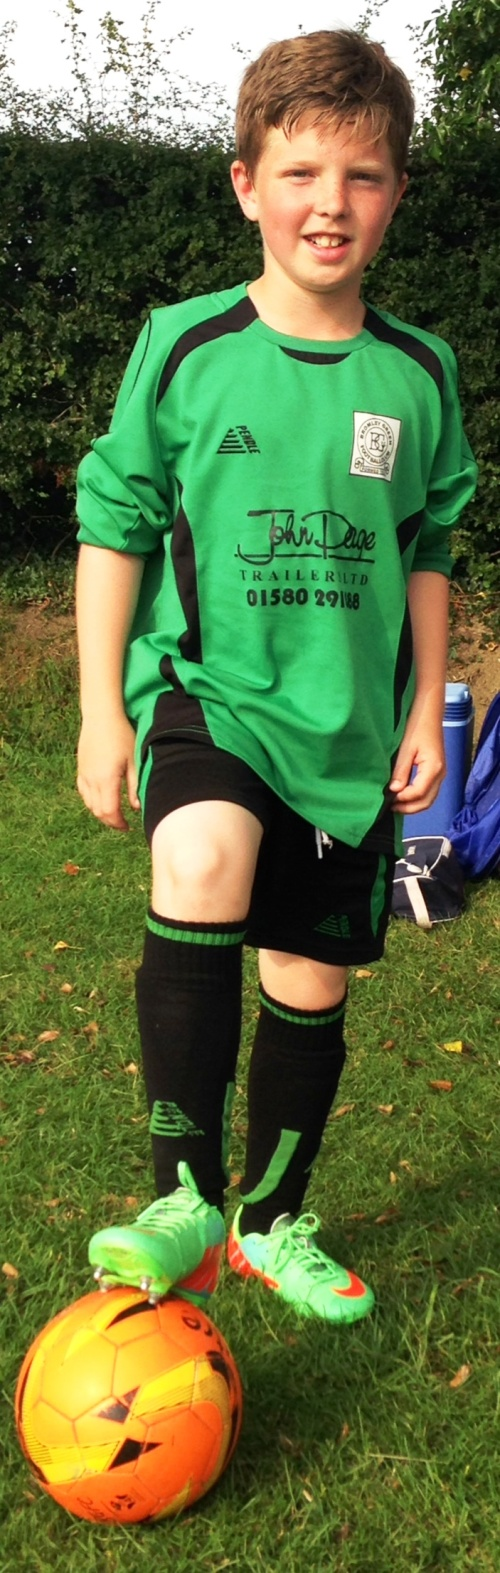 Well done Luke who excelled against some top opposition at Tonbridge today